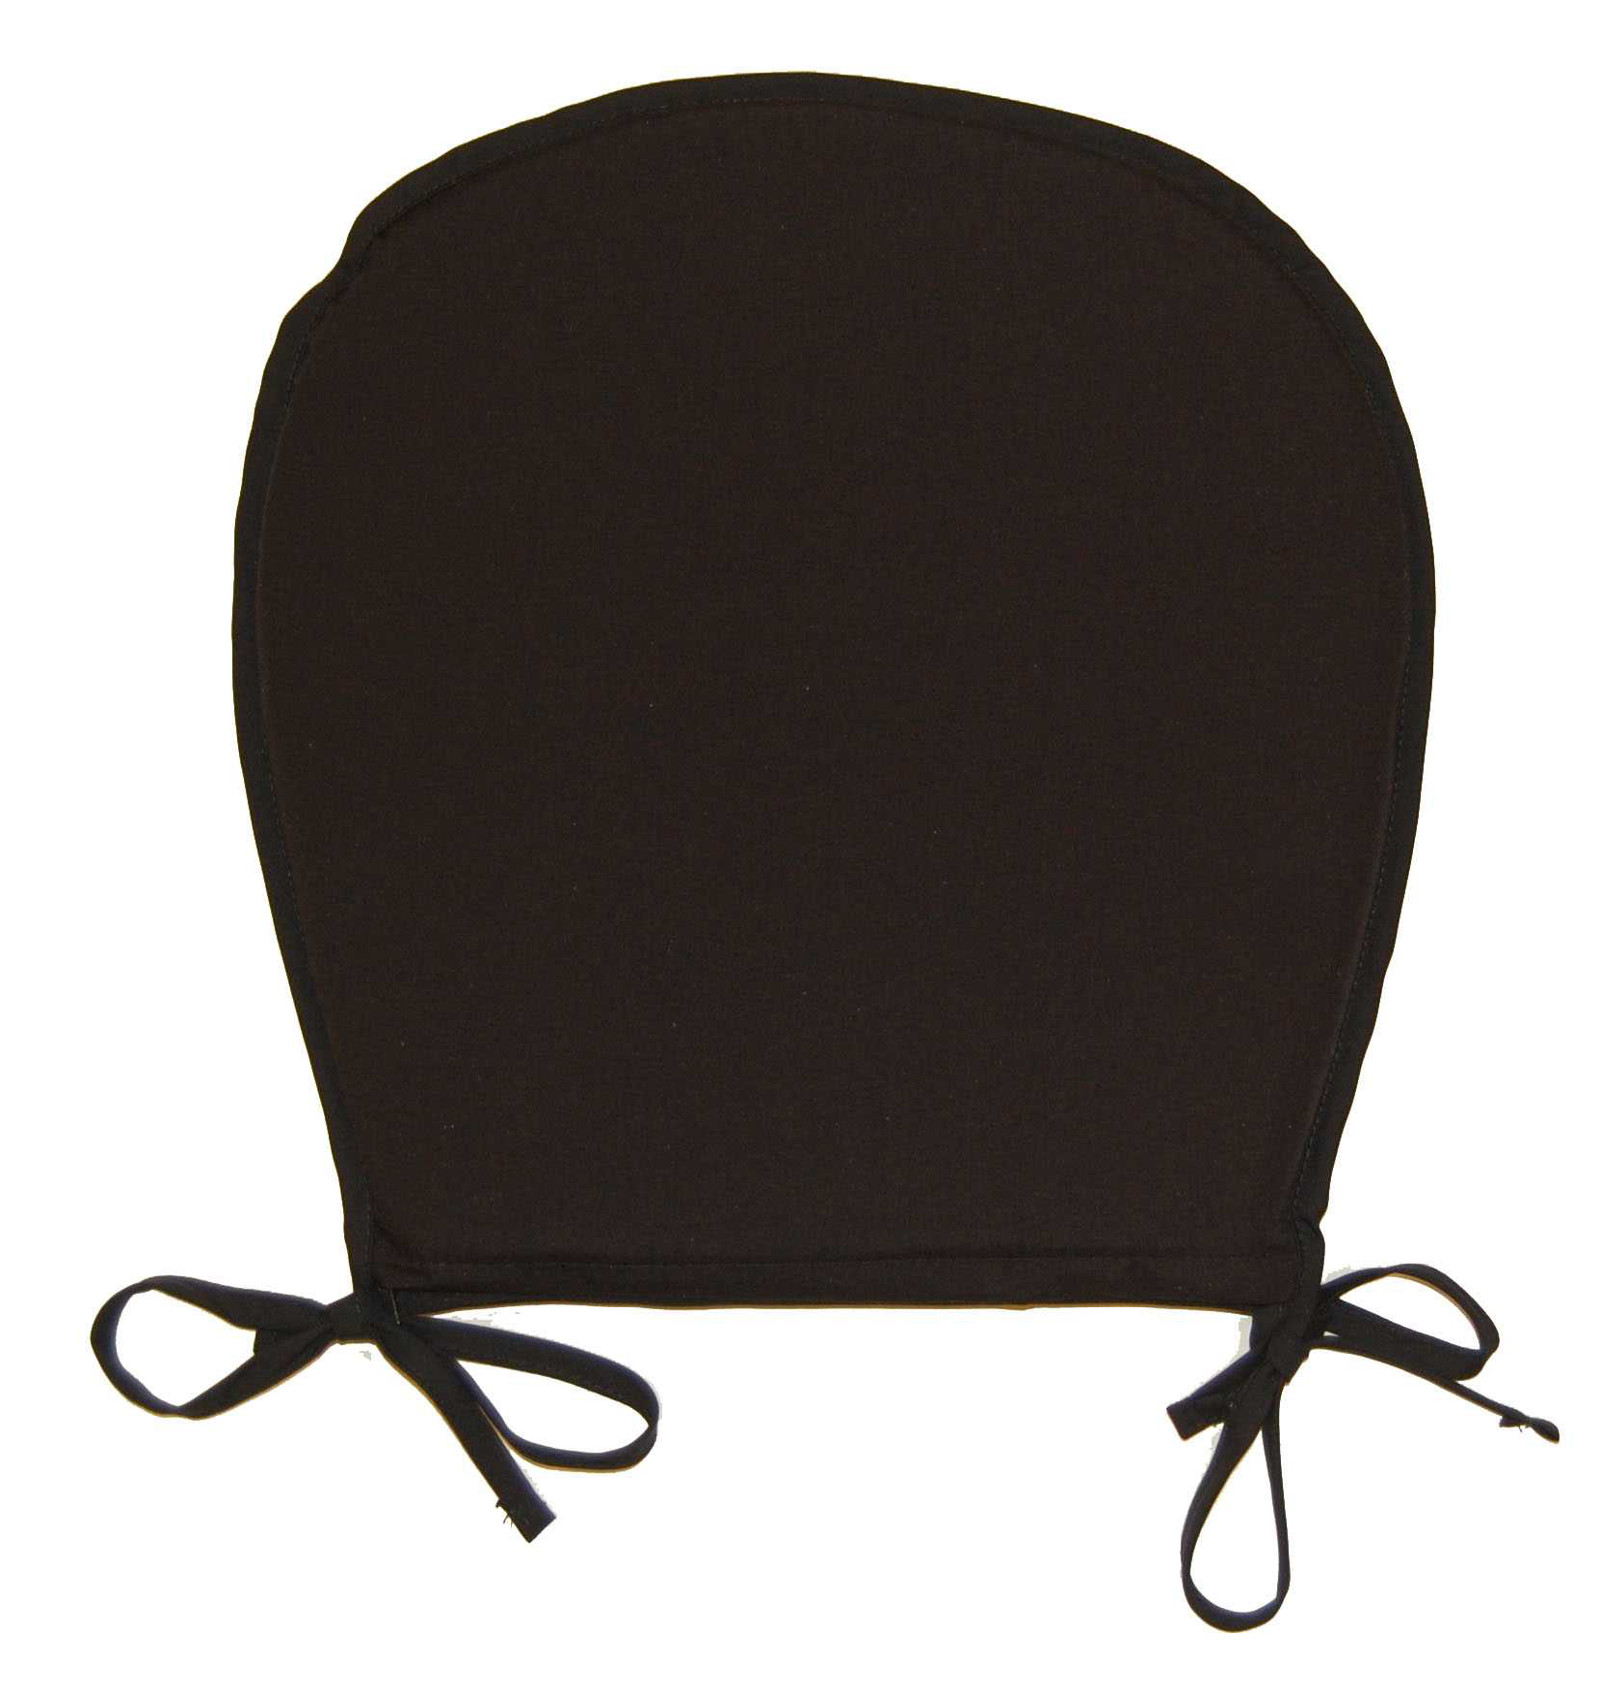 Round Kitchen Seat Pad Garden Furniture Dining Room Chair  : kitchen chair seat pad black from www.ebay.co.uk size 1600 x 1700 jpeg 237kB